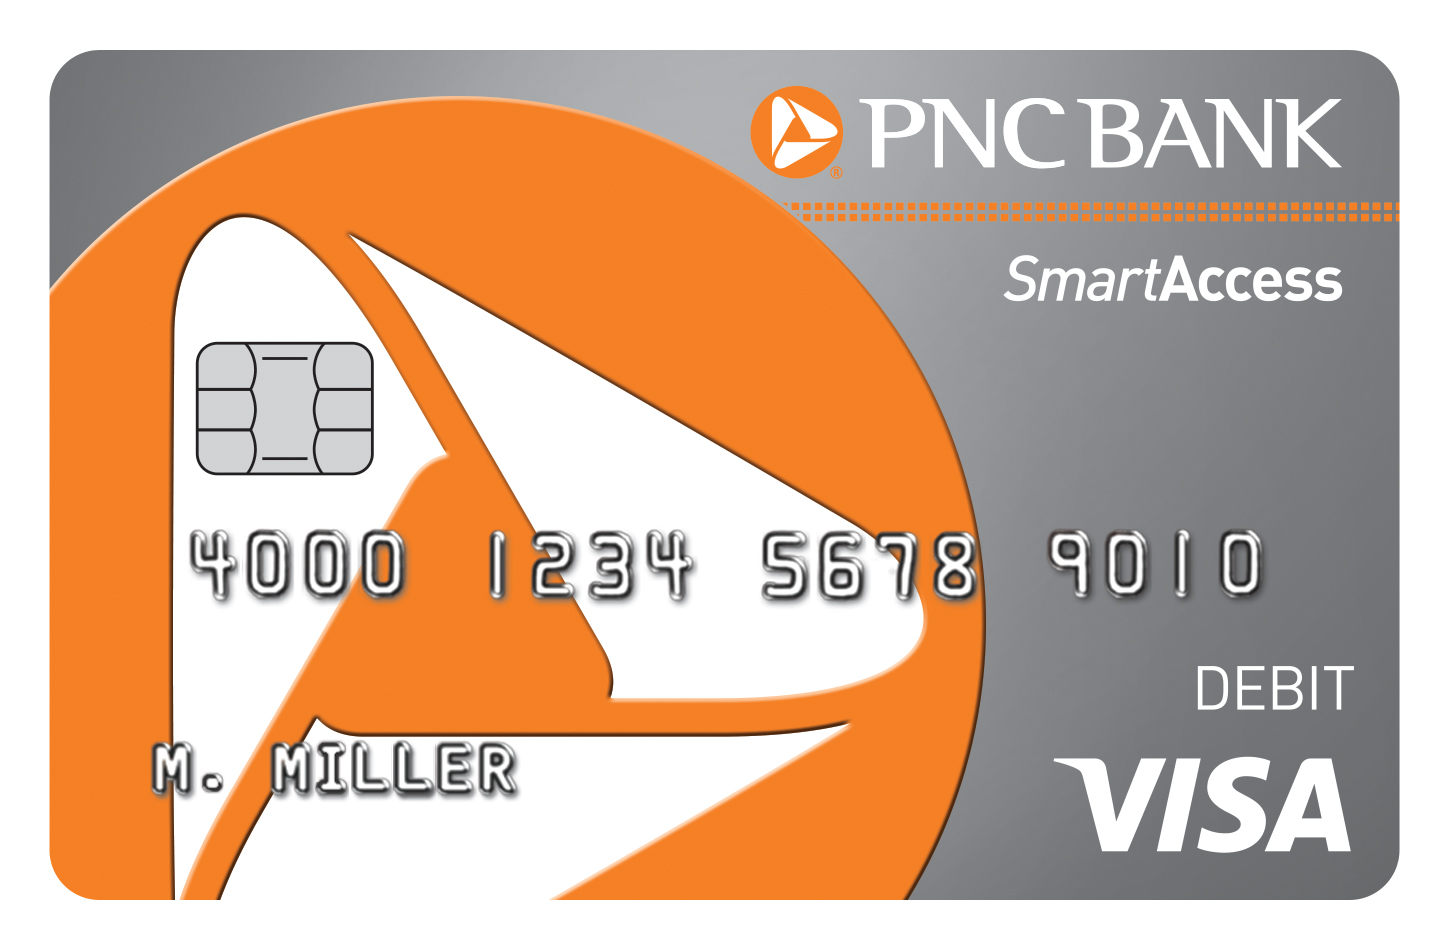 pnc credit card application declined